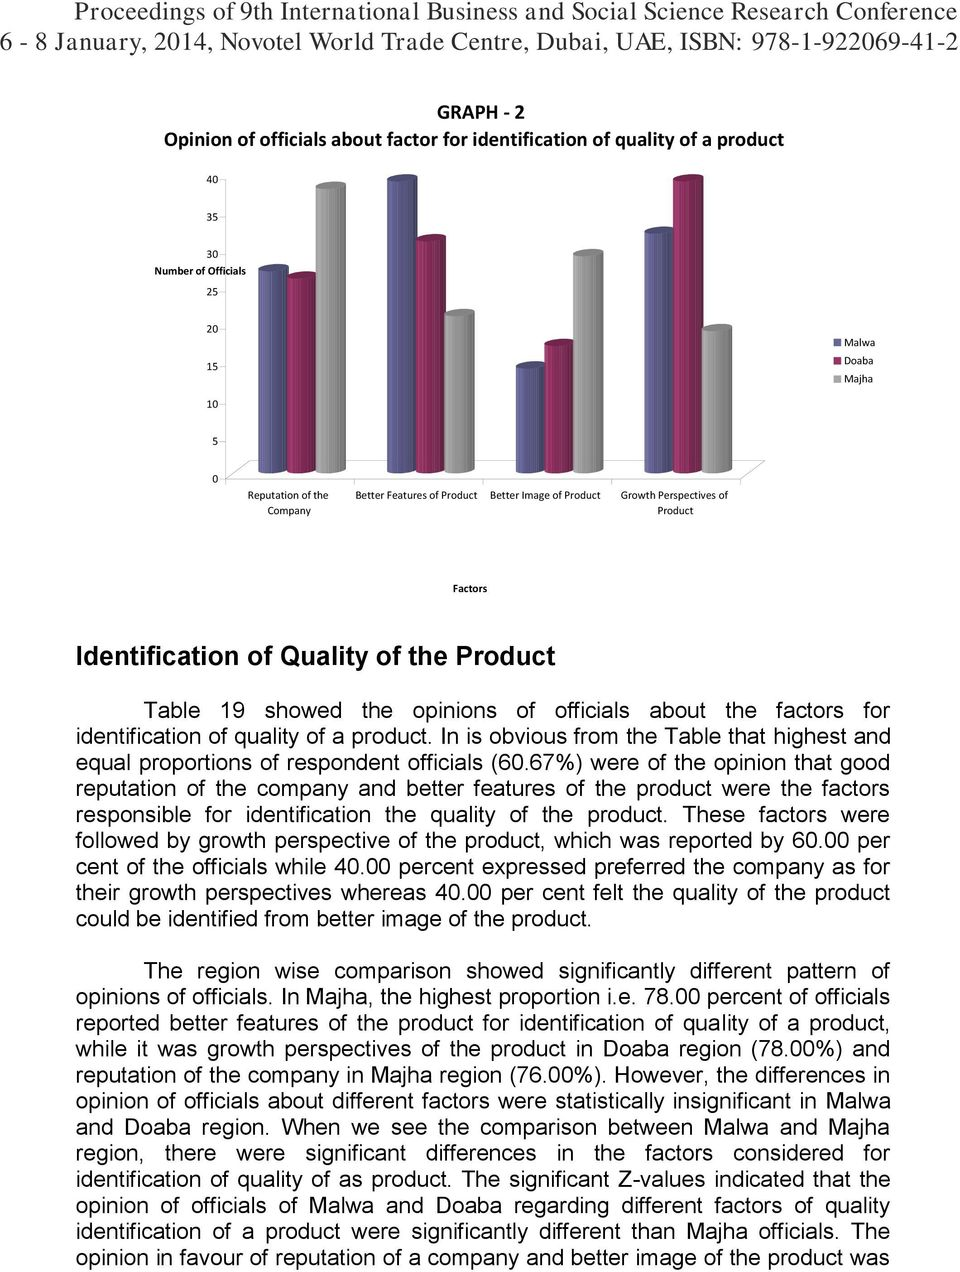 quality of a product. In is obvious from the Table that highest and equal proportions of respondent officials (60.